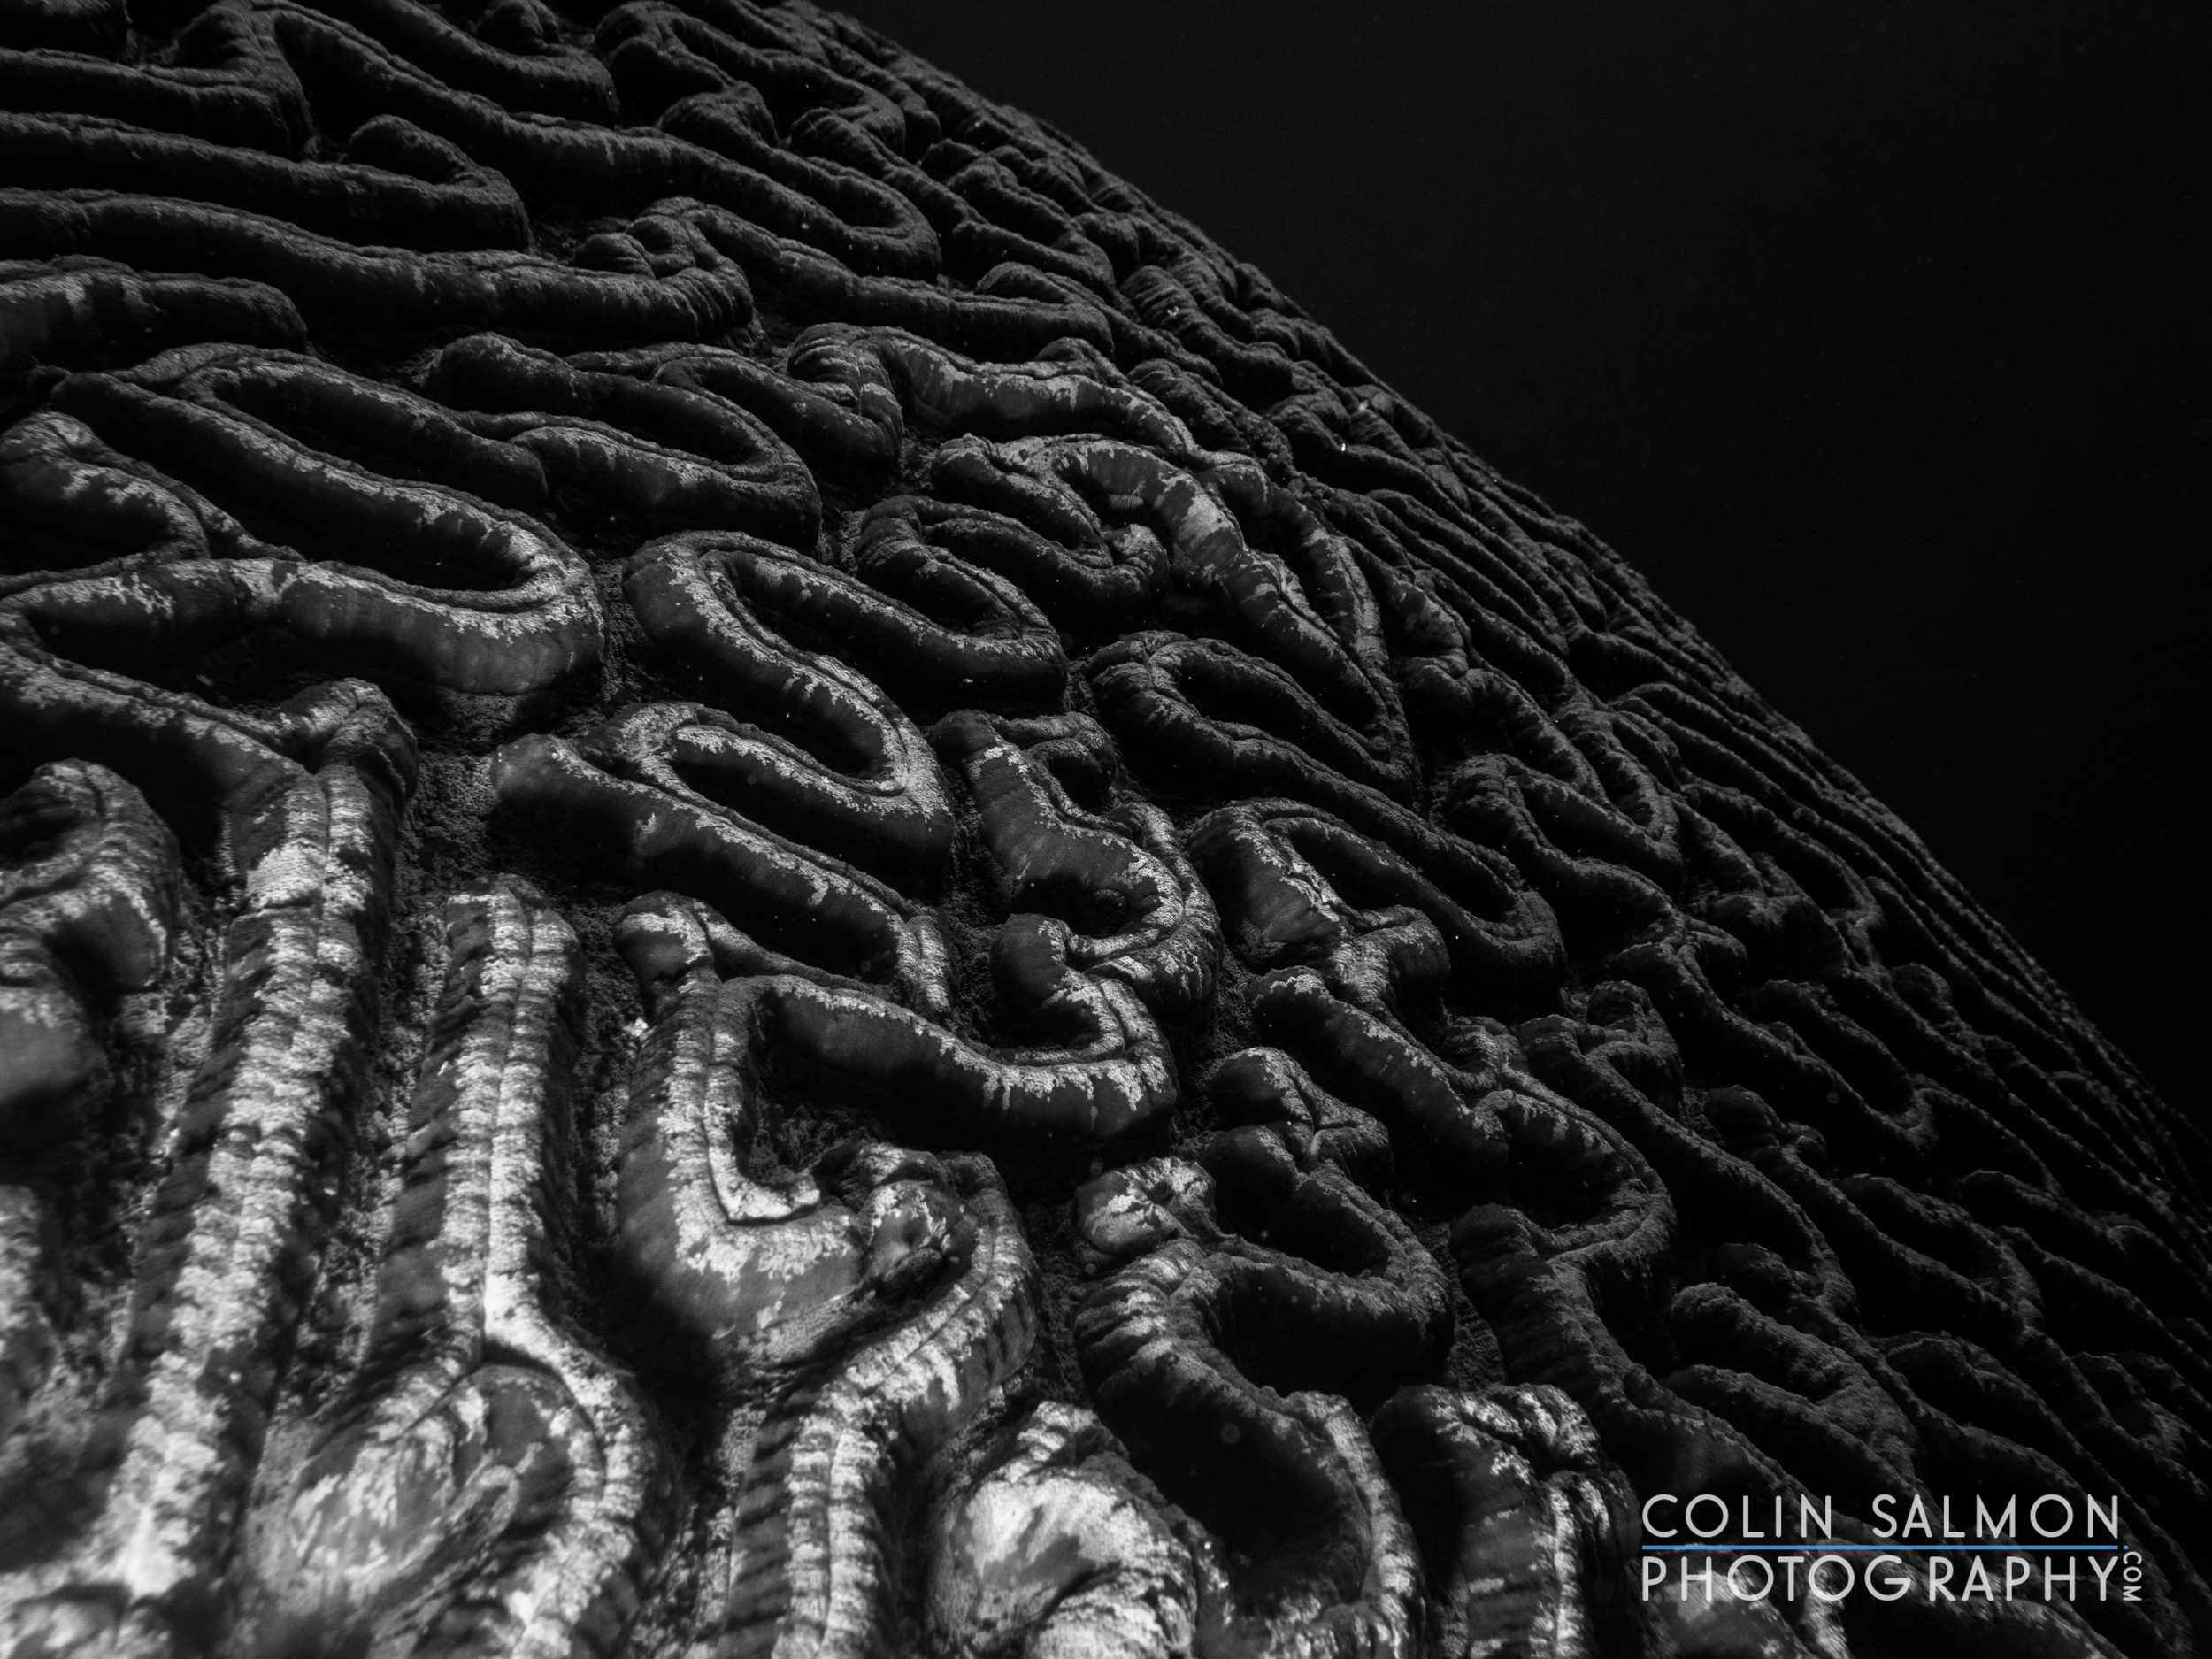 Brain coral or maze coral  (Platygyra sp.)  - Dauin, Philippines